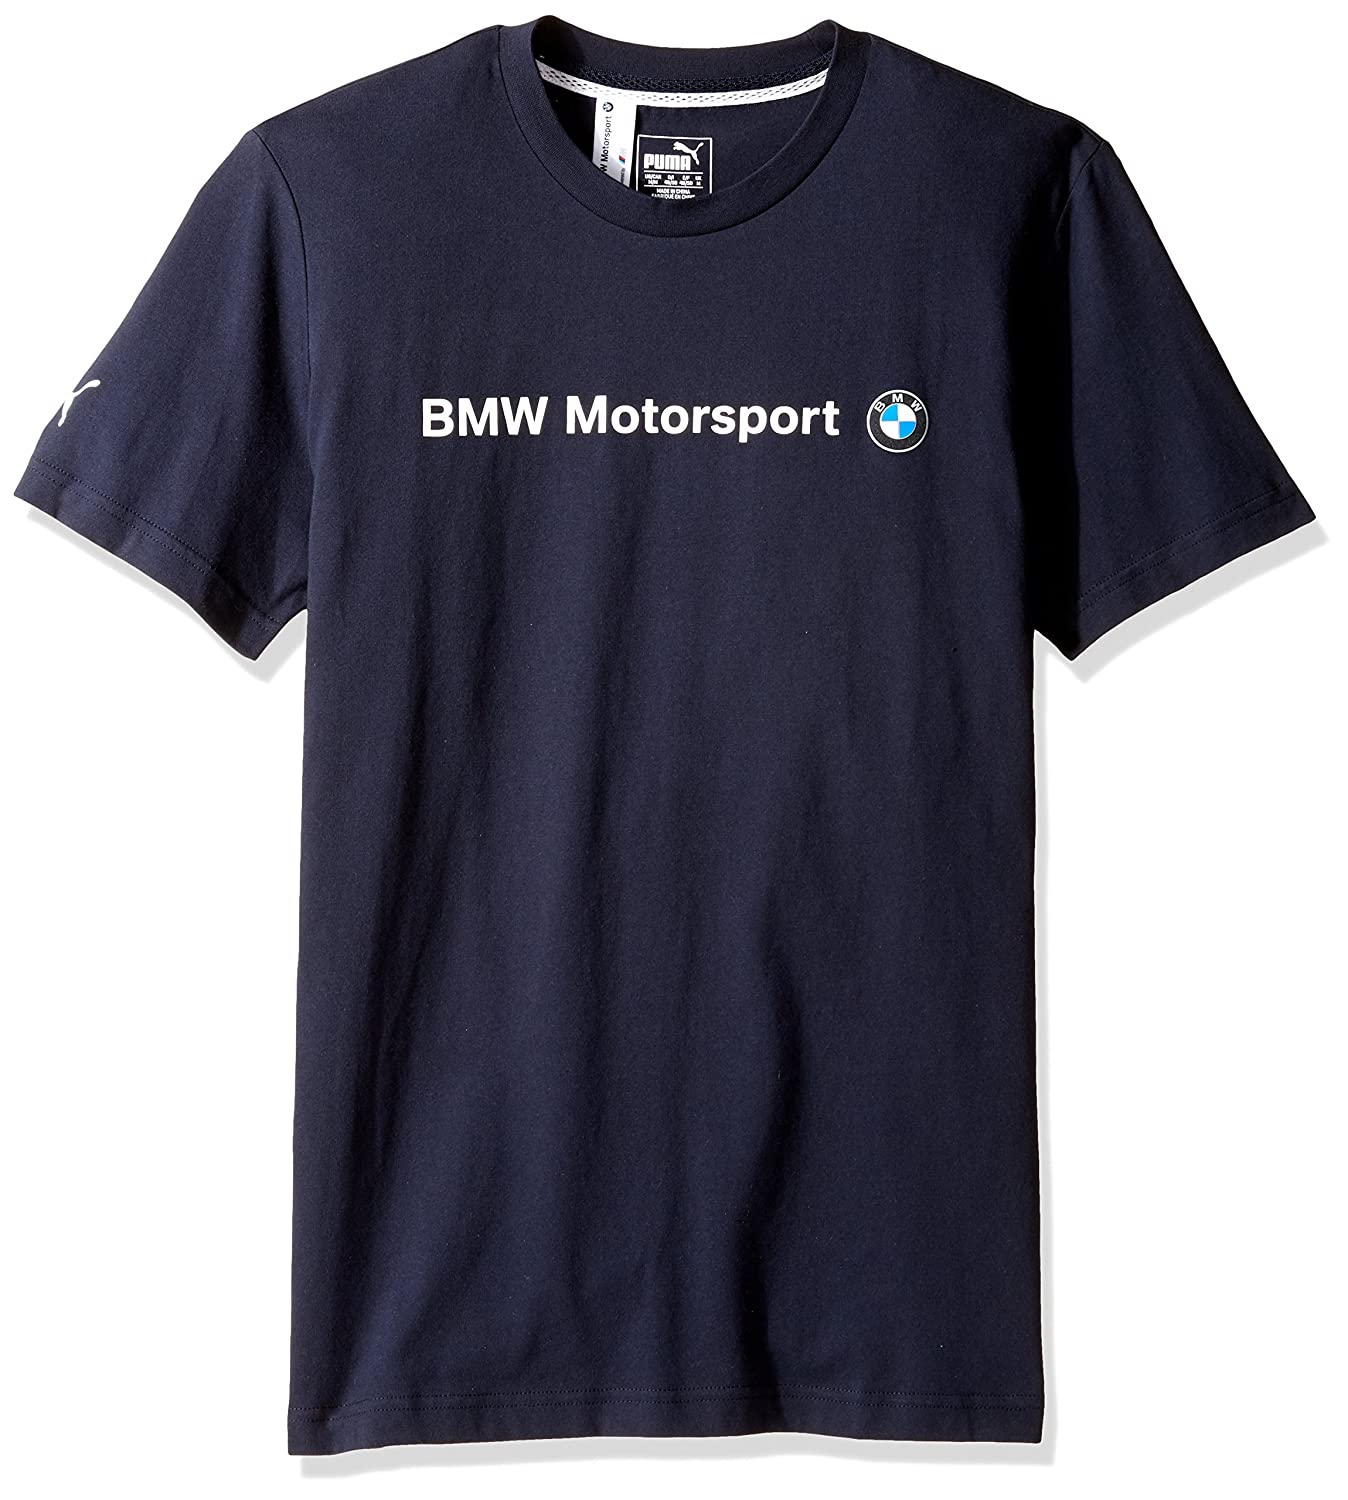 pricing k time bmw suit m description limited and product bmwsuitsmallft o motorsports llc clothing e